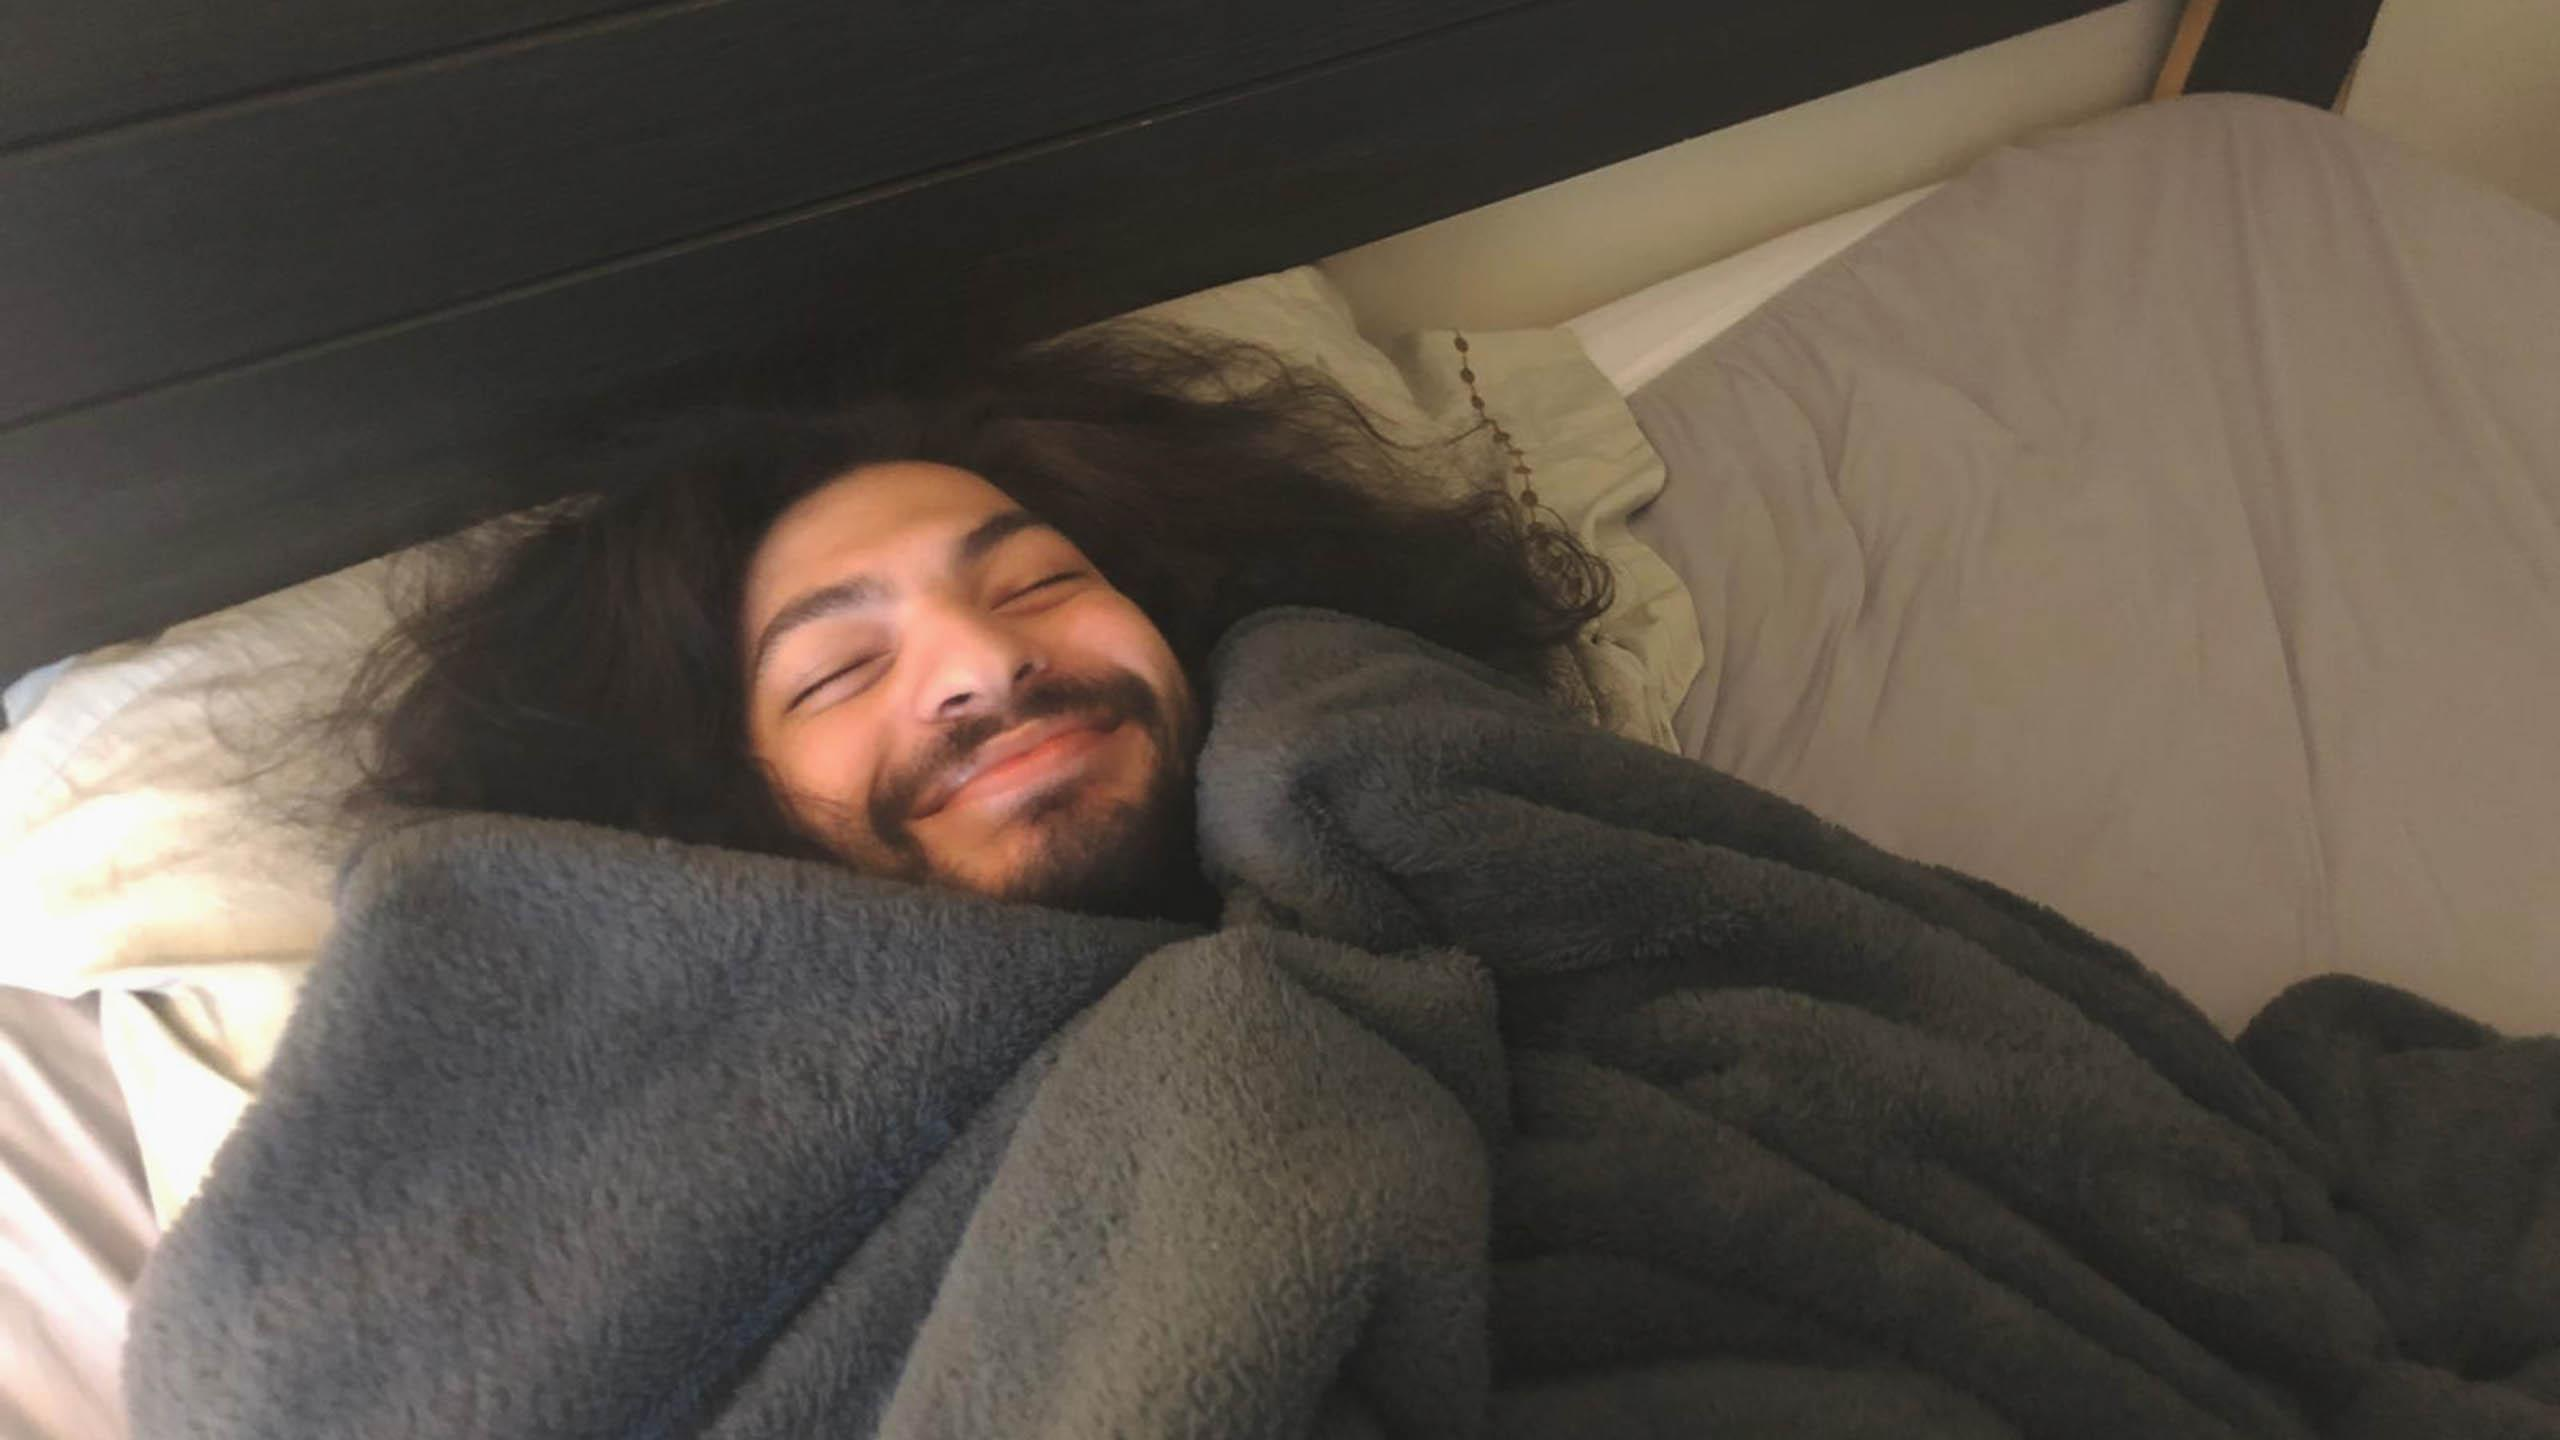 Man laying on bed, covered with blanket, smiling happily.